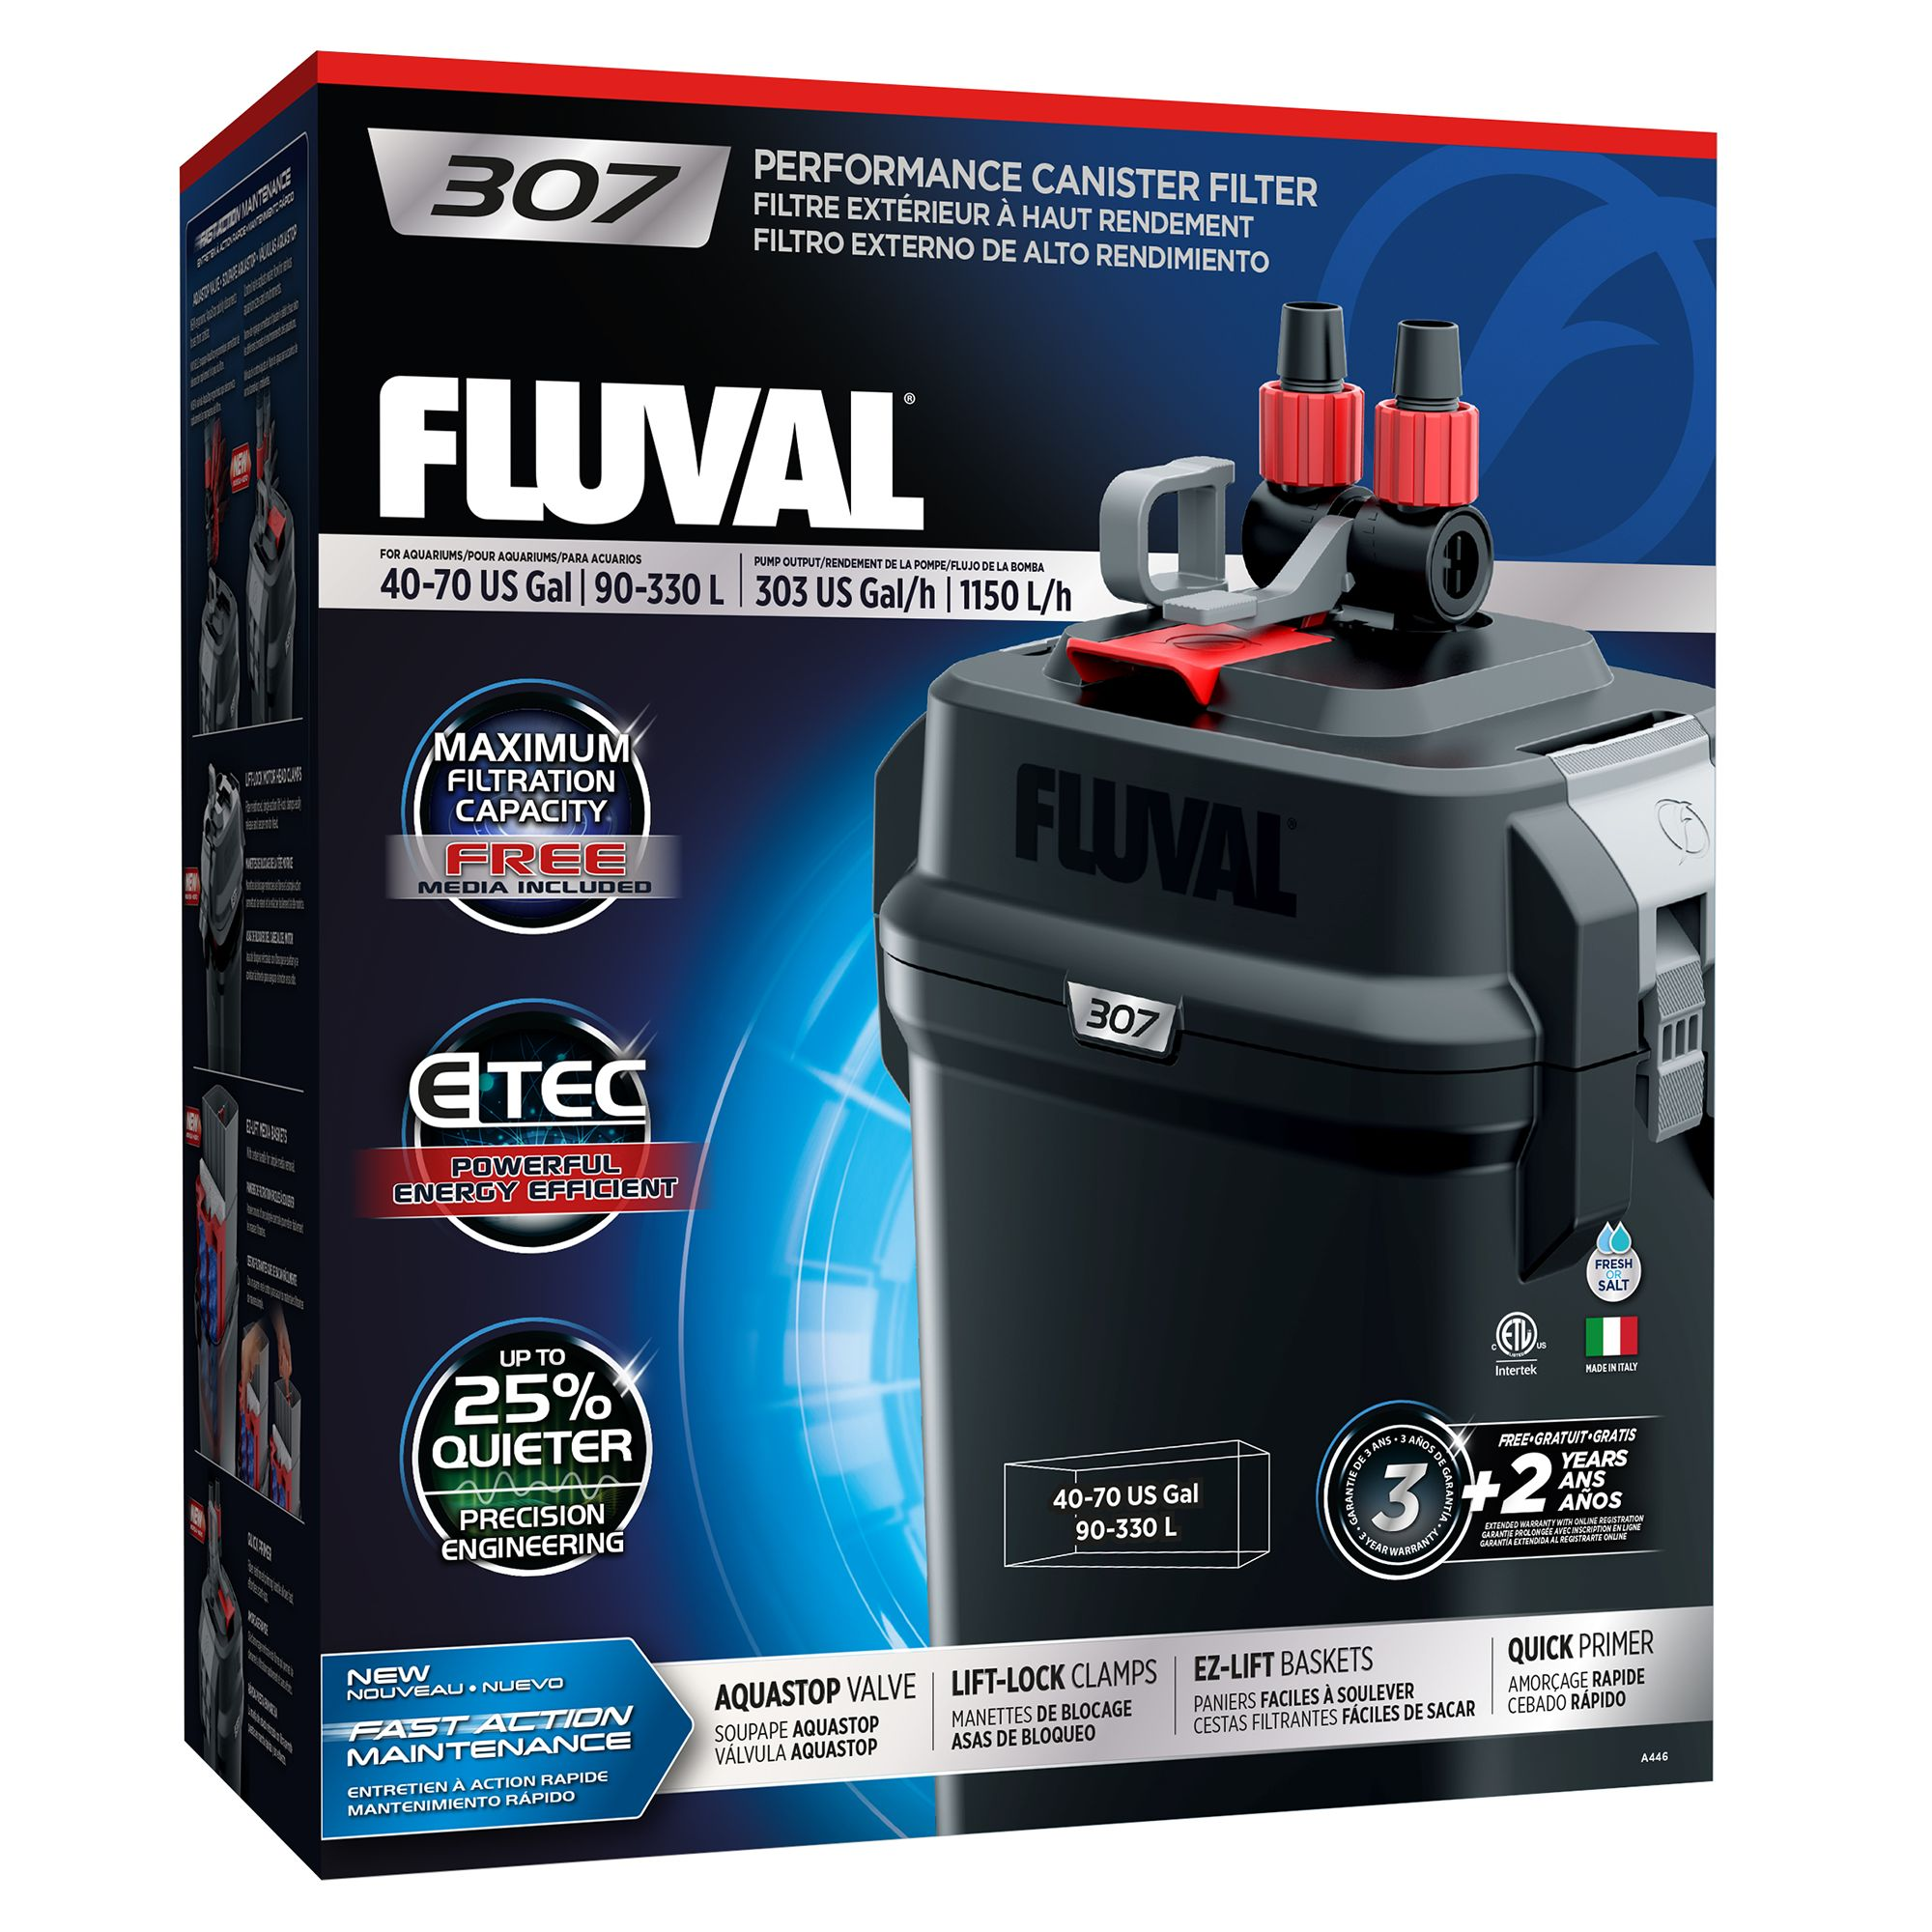 luval® 307 Performance Canister Filter